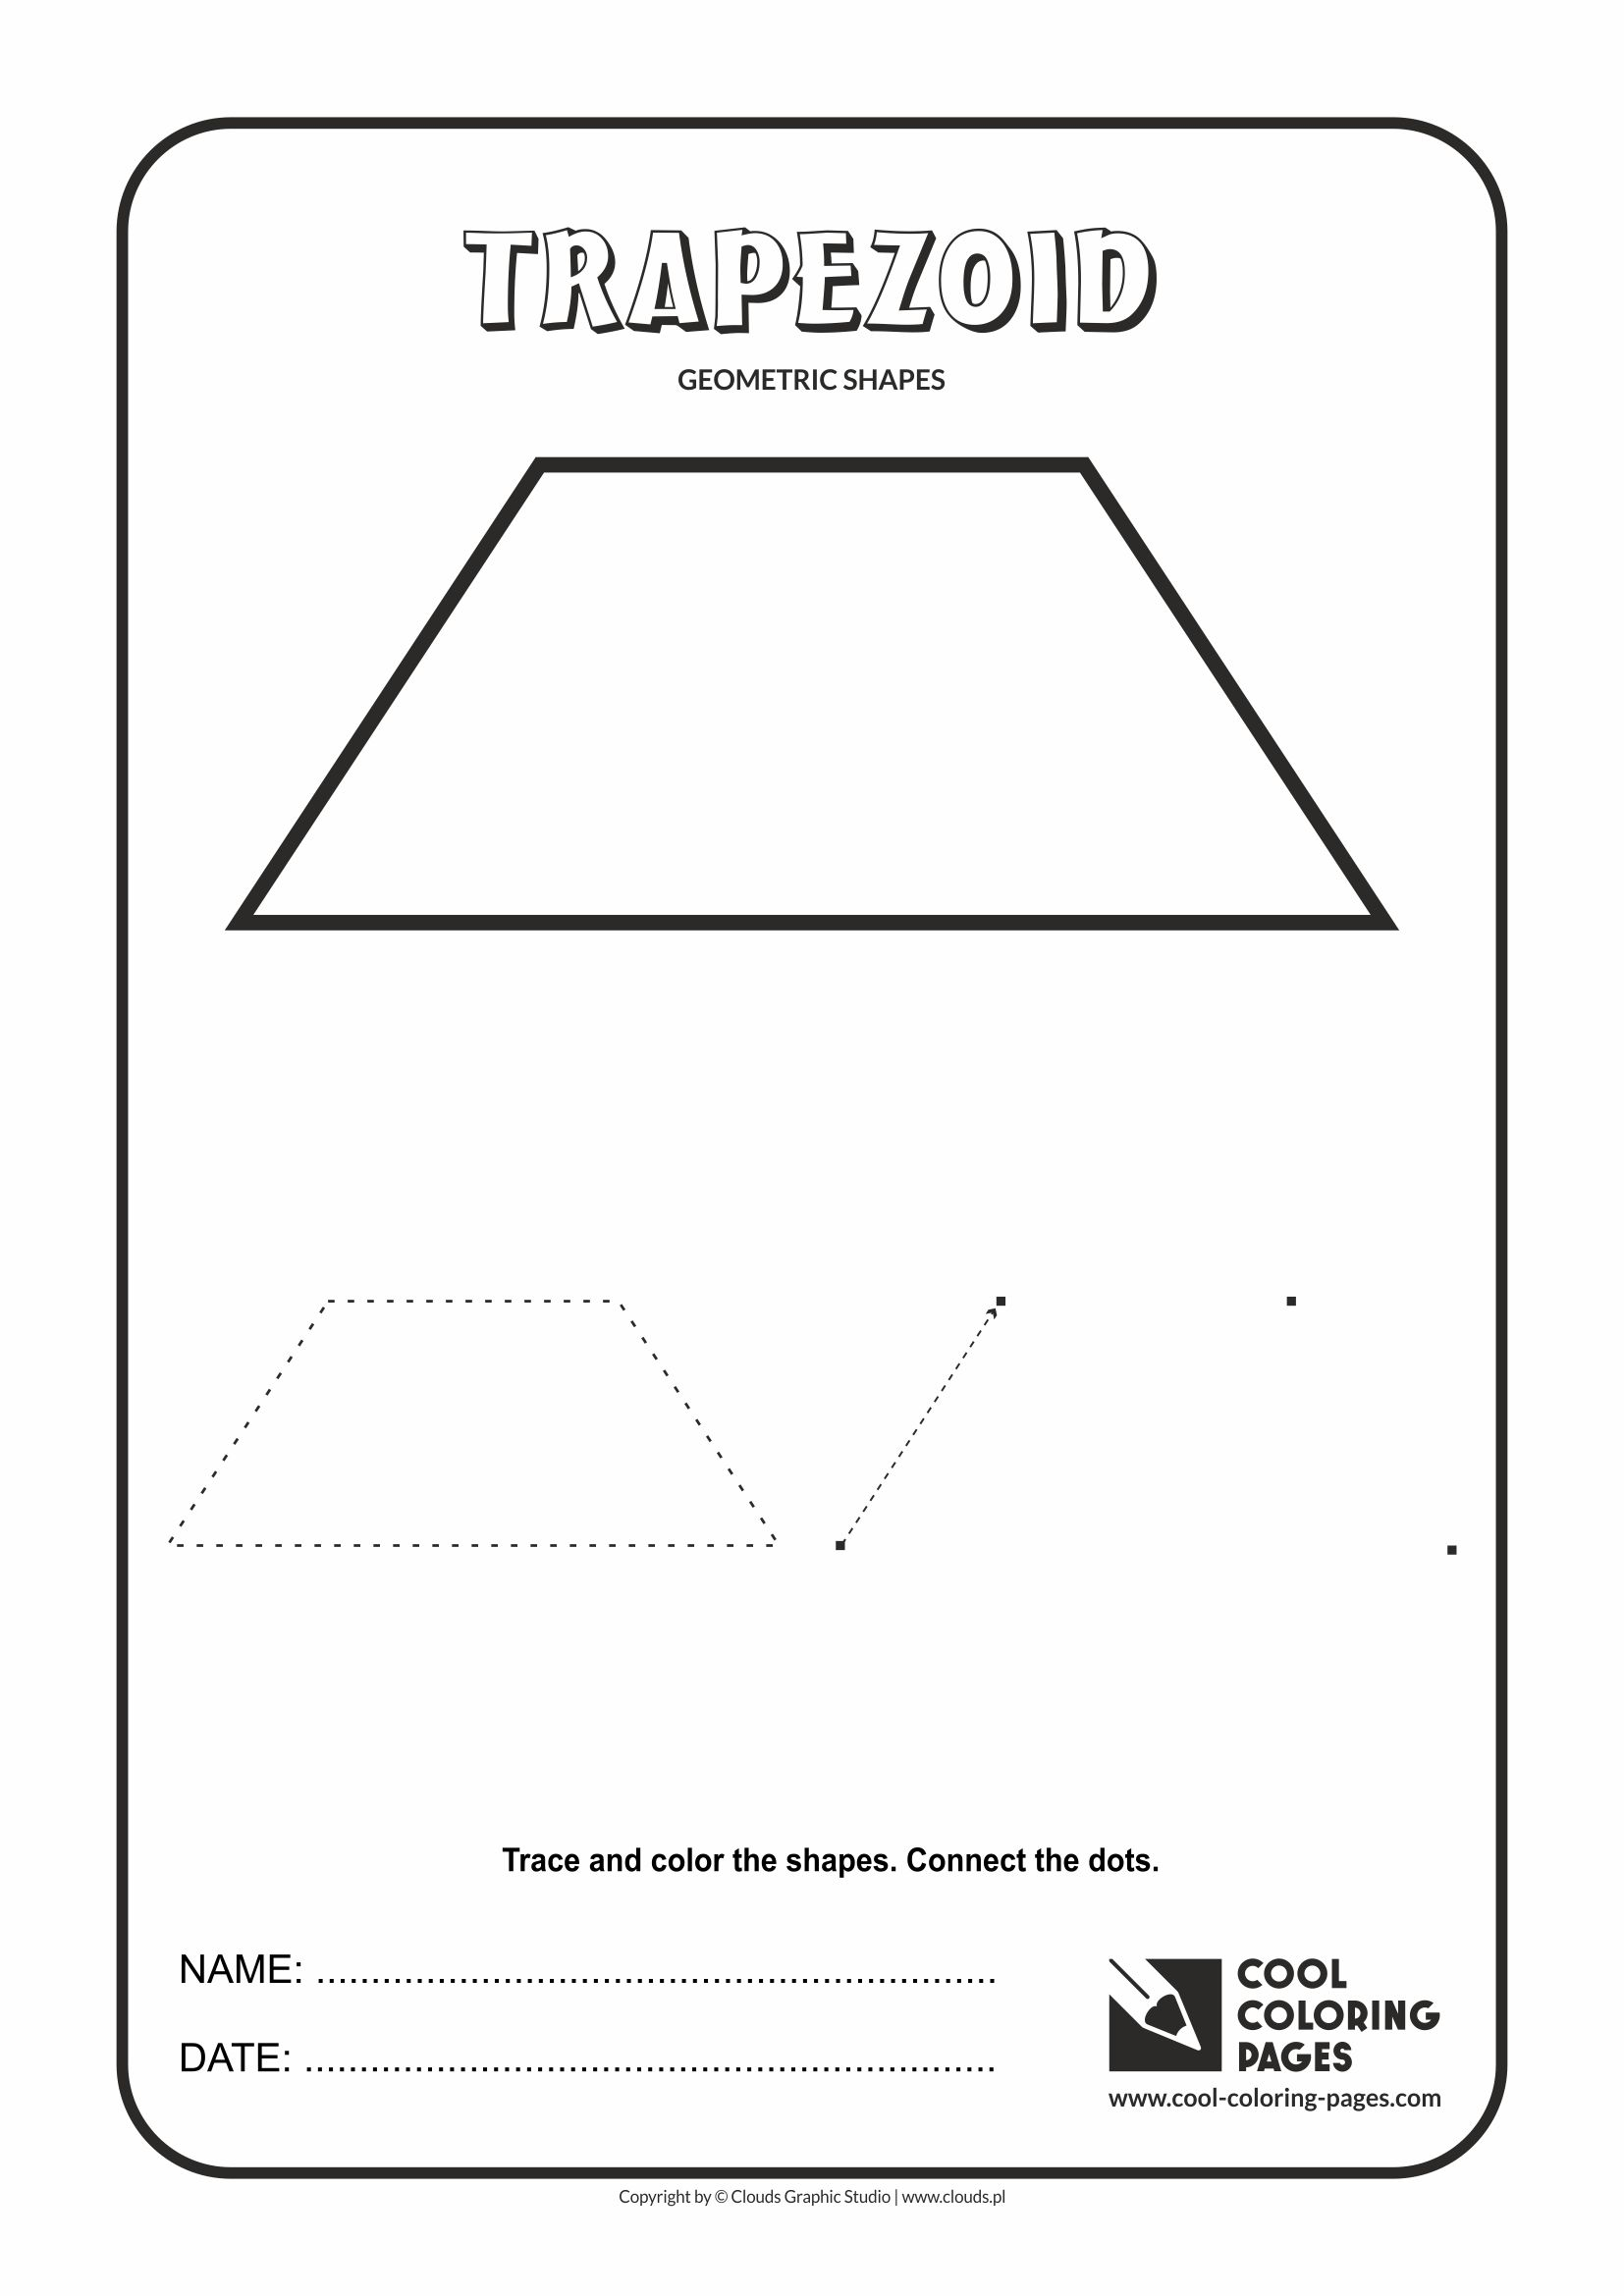 Cool Coloring Pages - Geometric shapes / Trapezoid